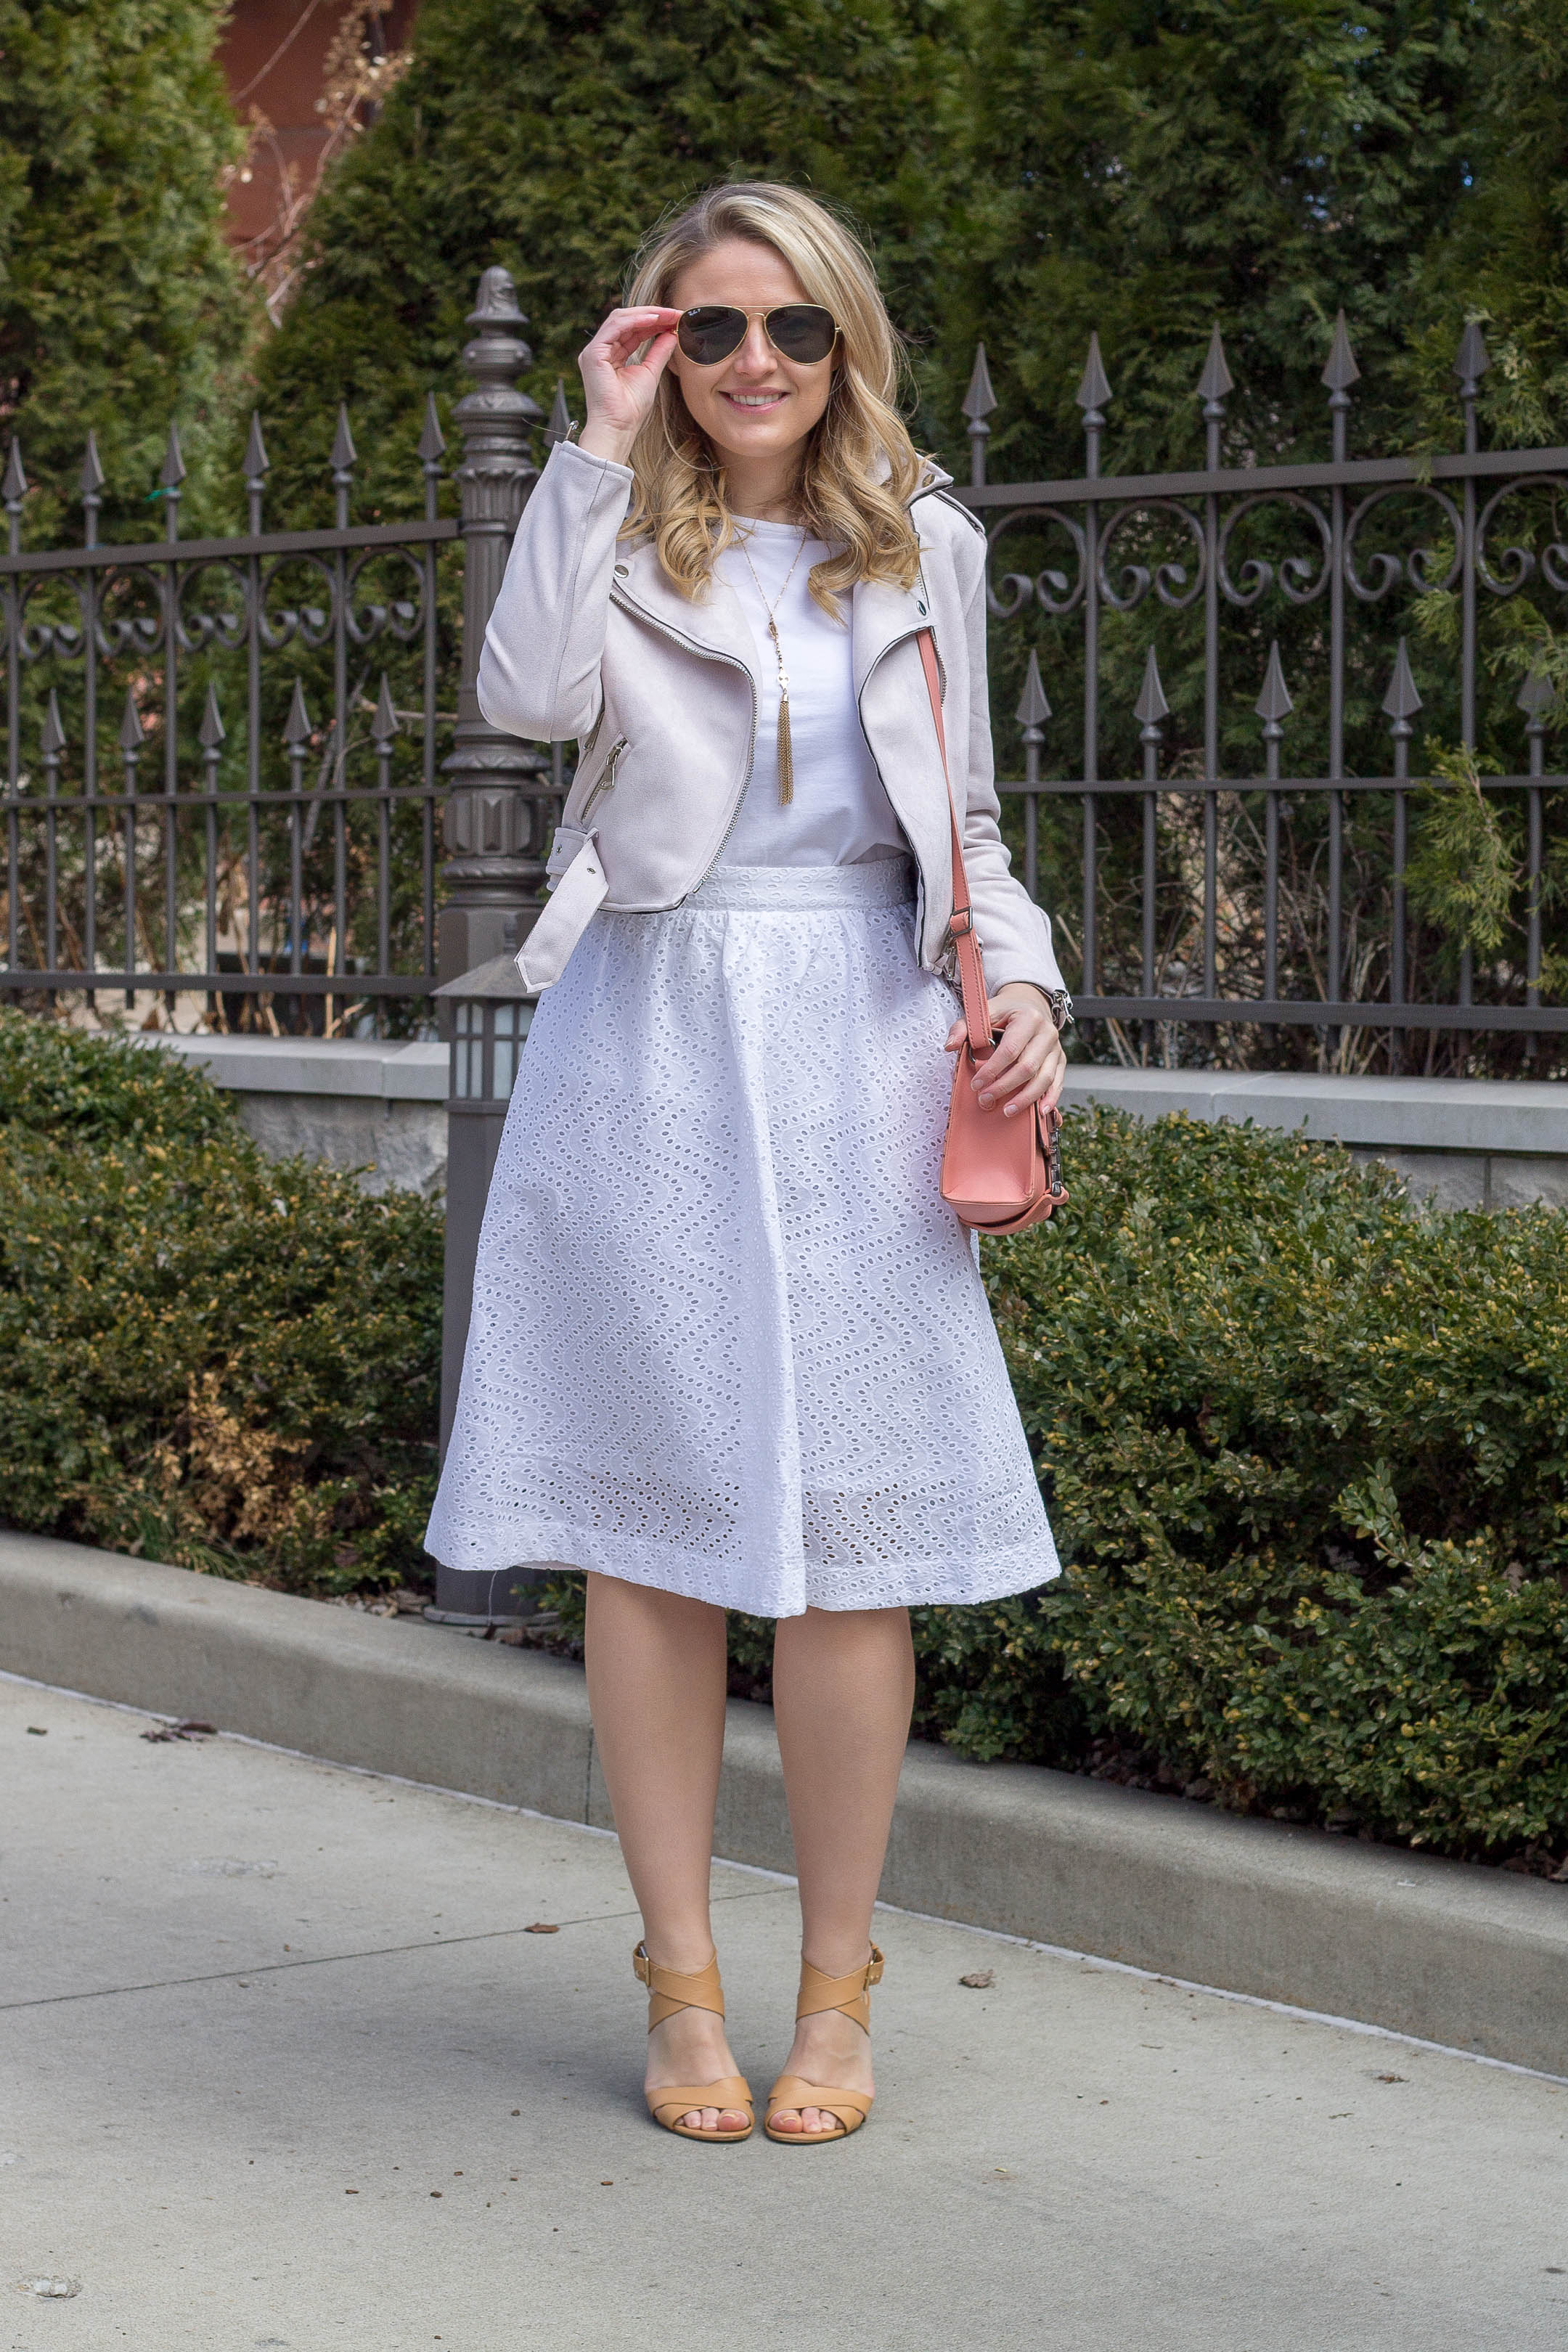 How to wear an all white outfit this spring